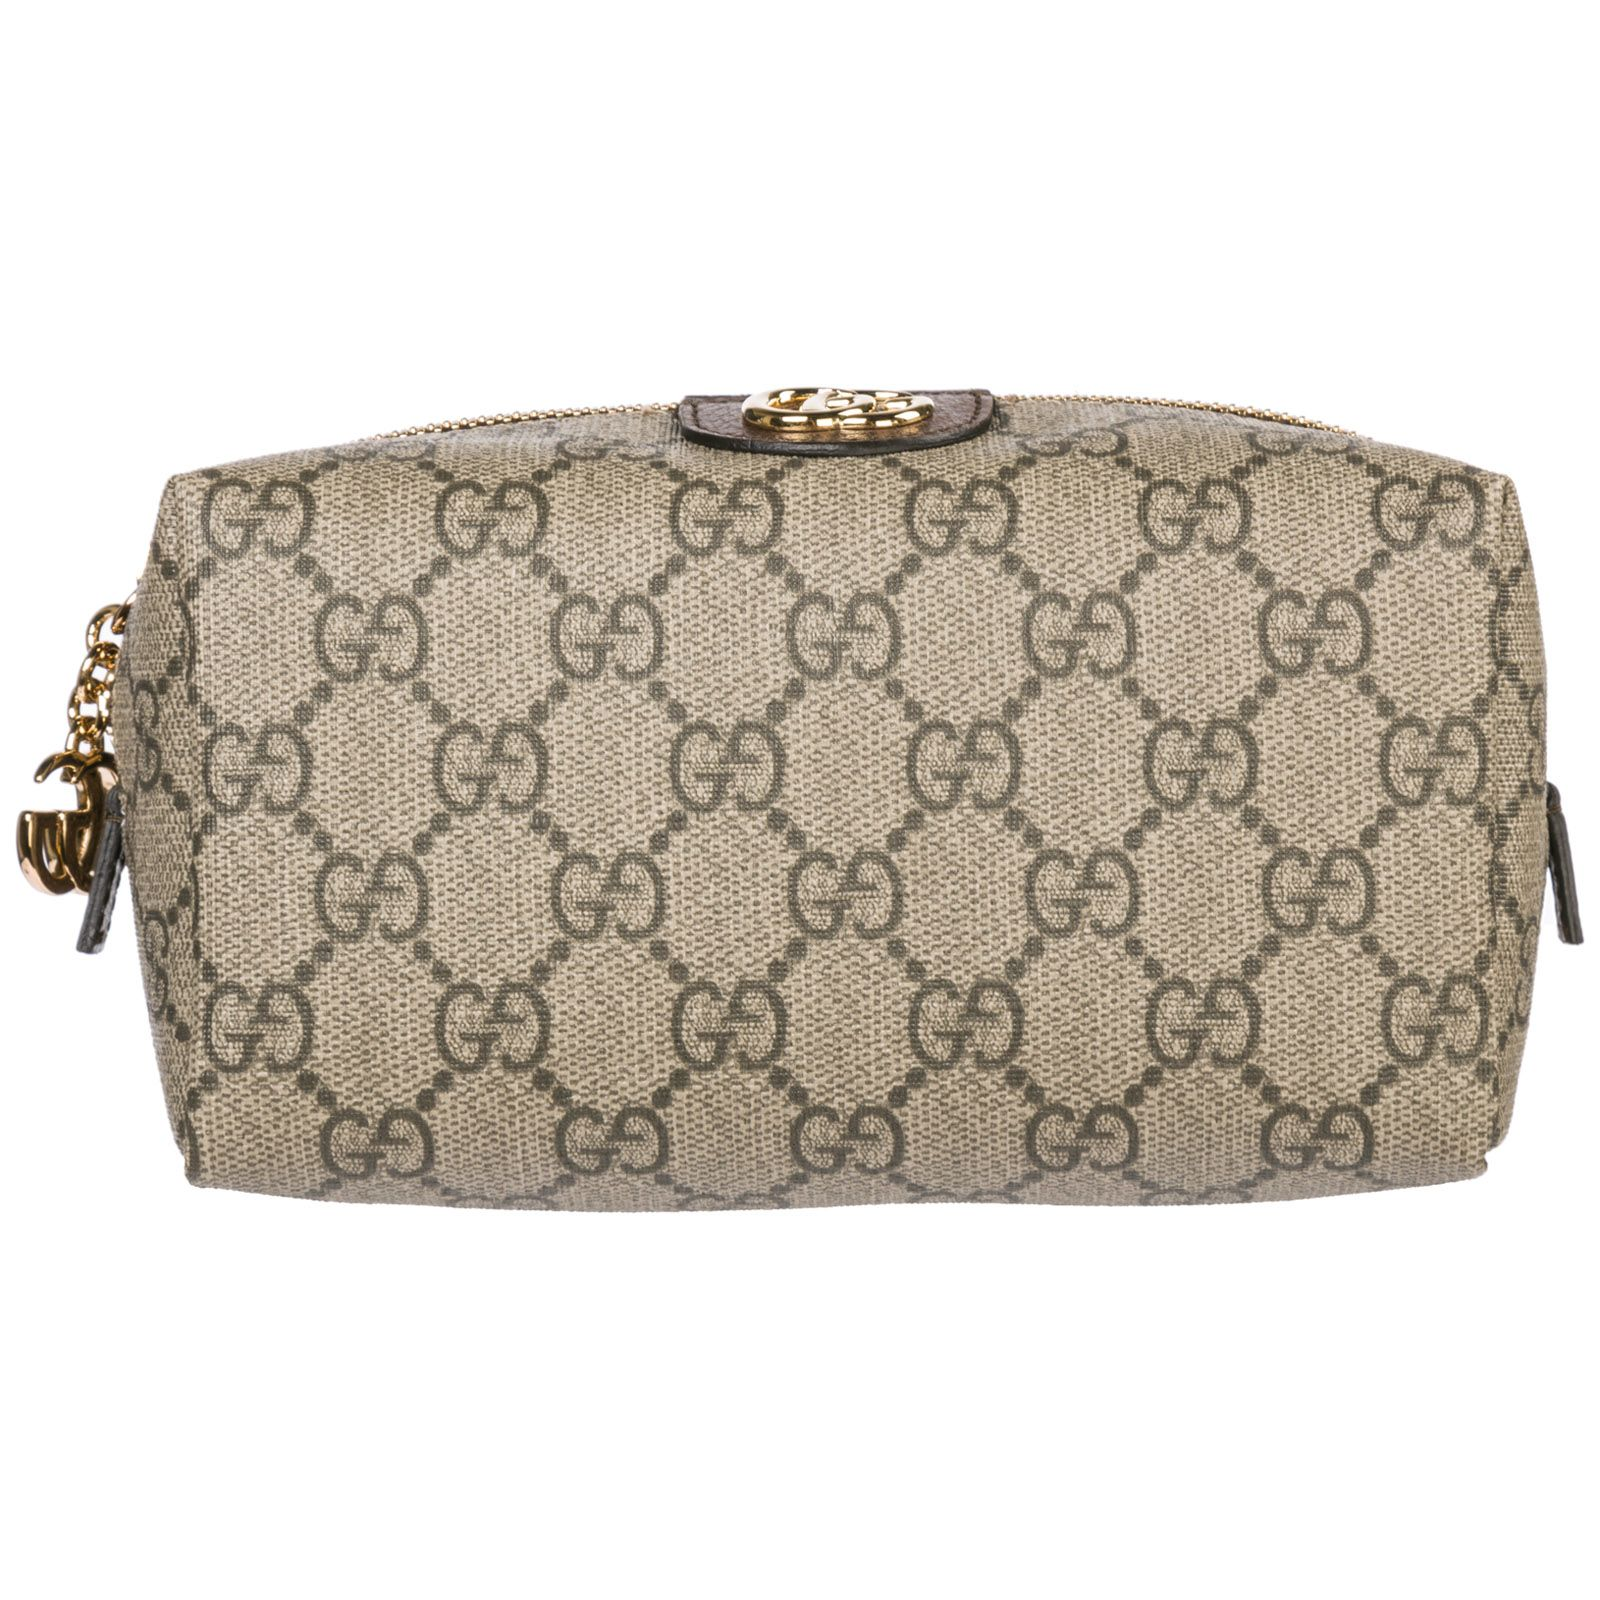 25c5f8f273fc ... ad952f2dc99 Gucci Gucci Travel Makeup Beauty Case Ophidia - Marrone -  10902035 .